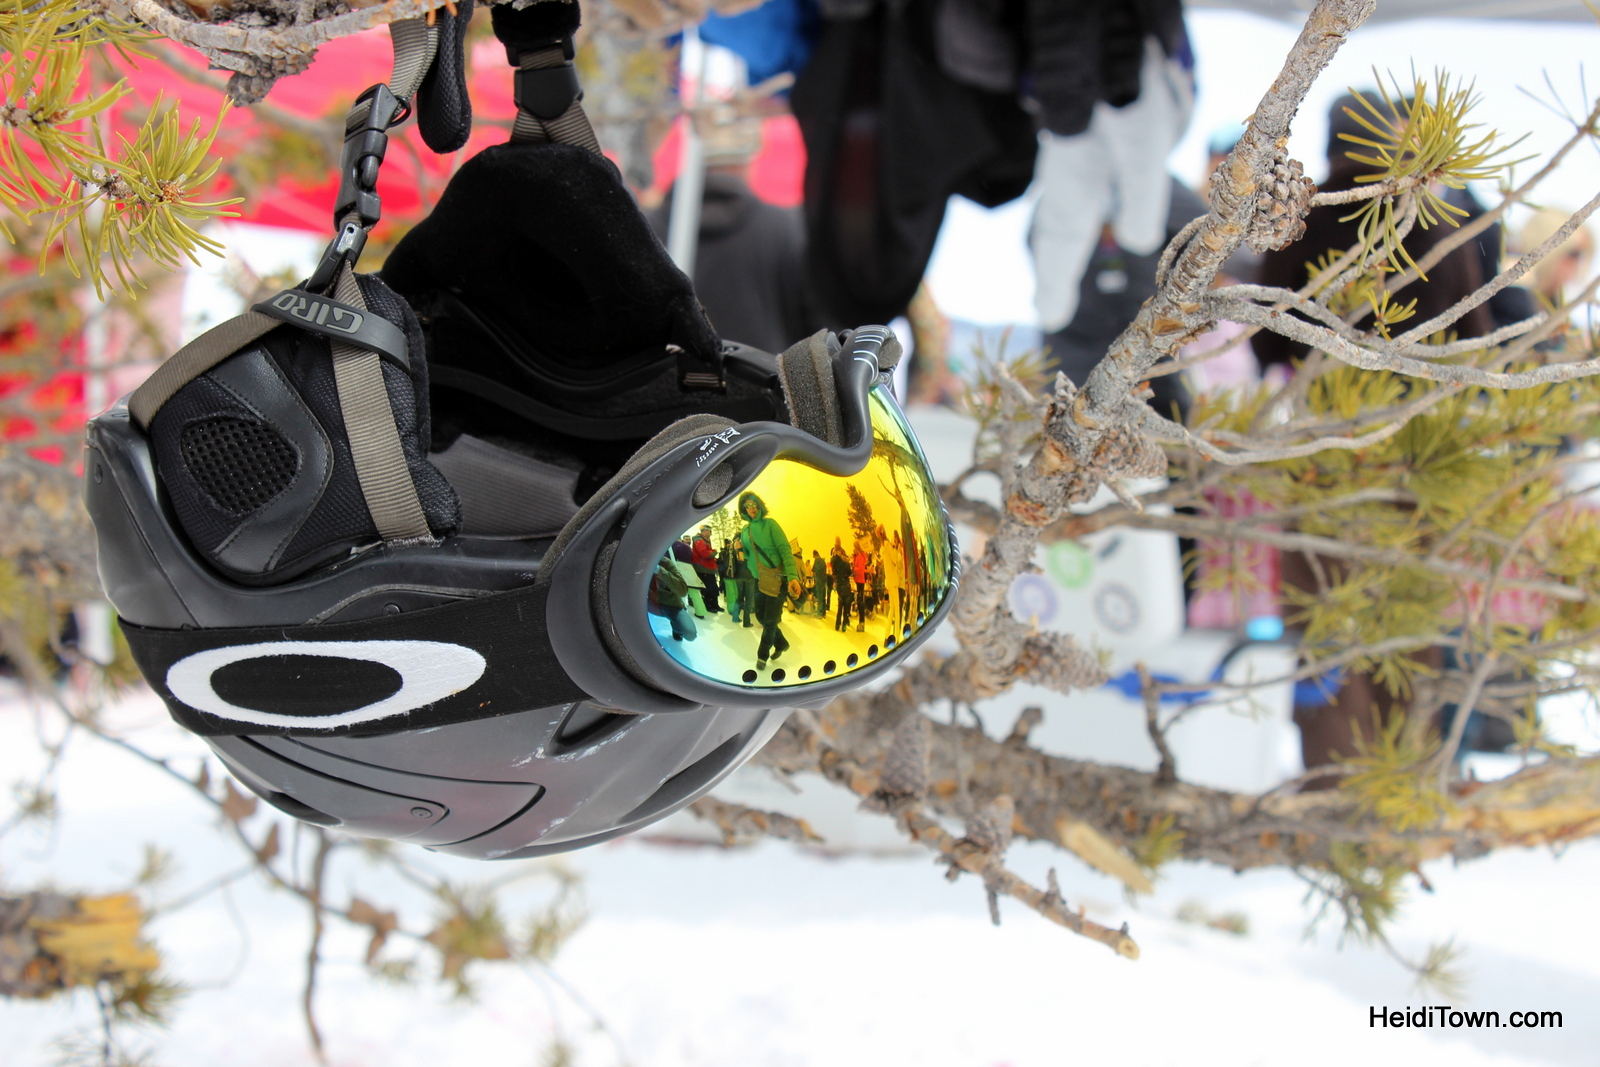 ski helmet dangling from a tree at the Mountain Top Picnic at Taste of Vail. HeidiTown.com